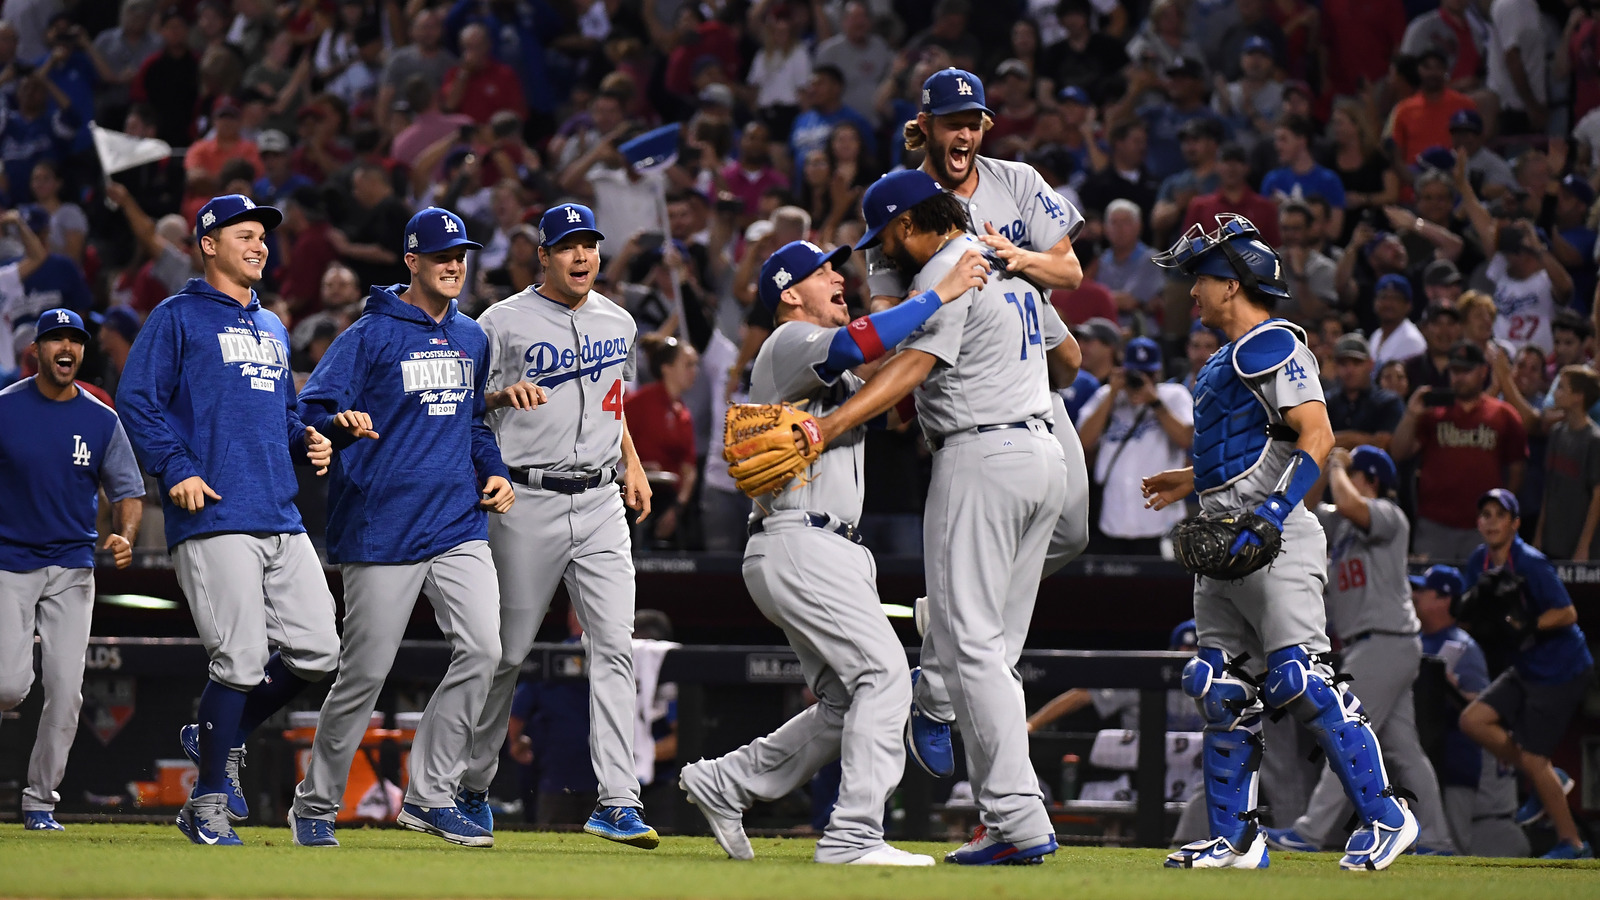 NLDS: Los Angeles Dodgers sweep away Arizona Diamondbacks, advance to NLCS